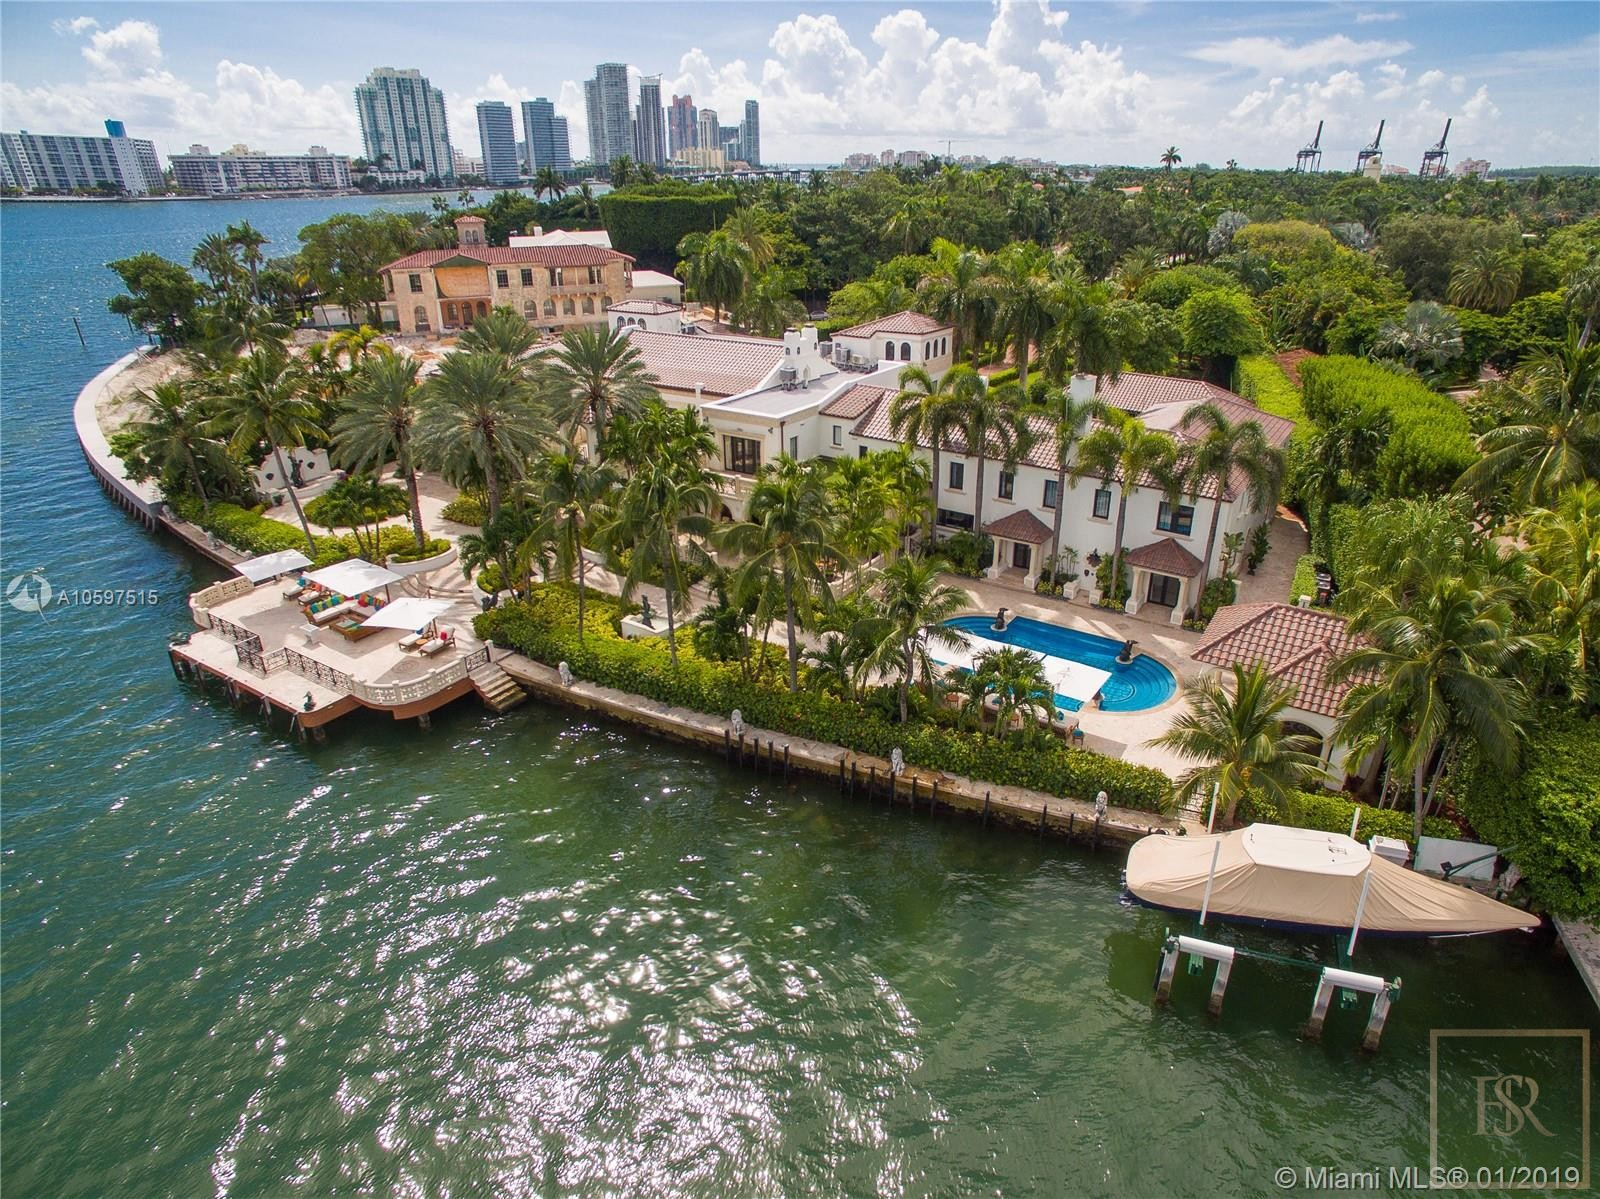 For super rich ultra luxury real estate properties homes, most expensive houses, buy unique penthouse apartment and ultimate villa in Miami Beach USA for sale